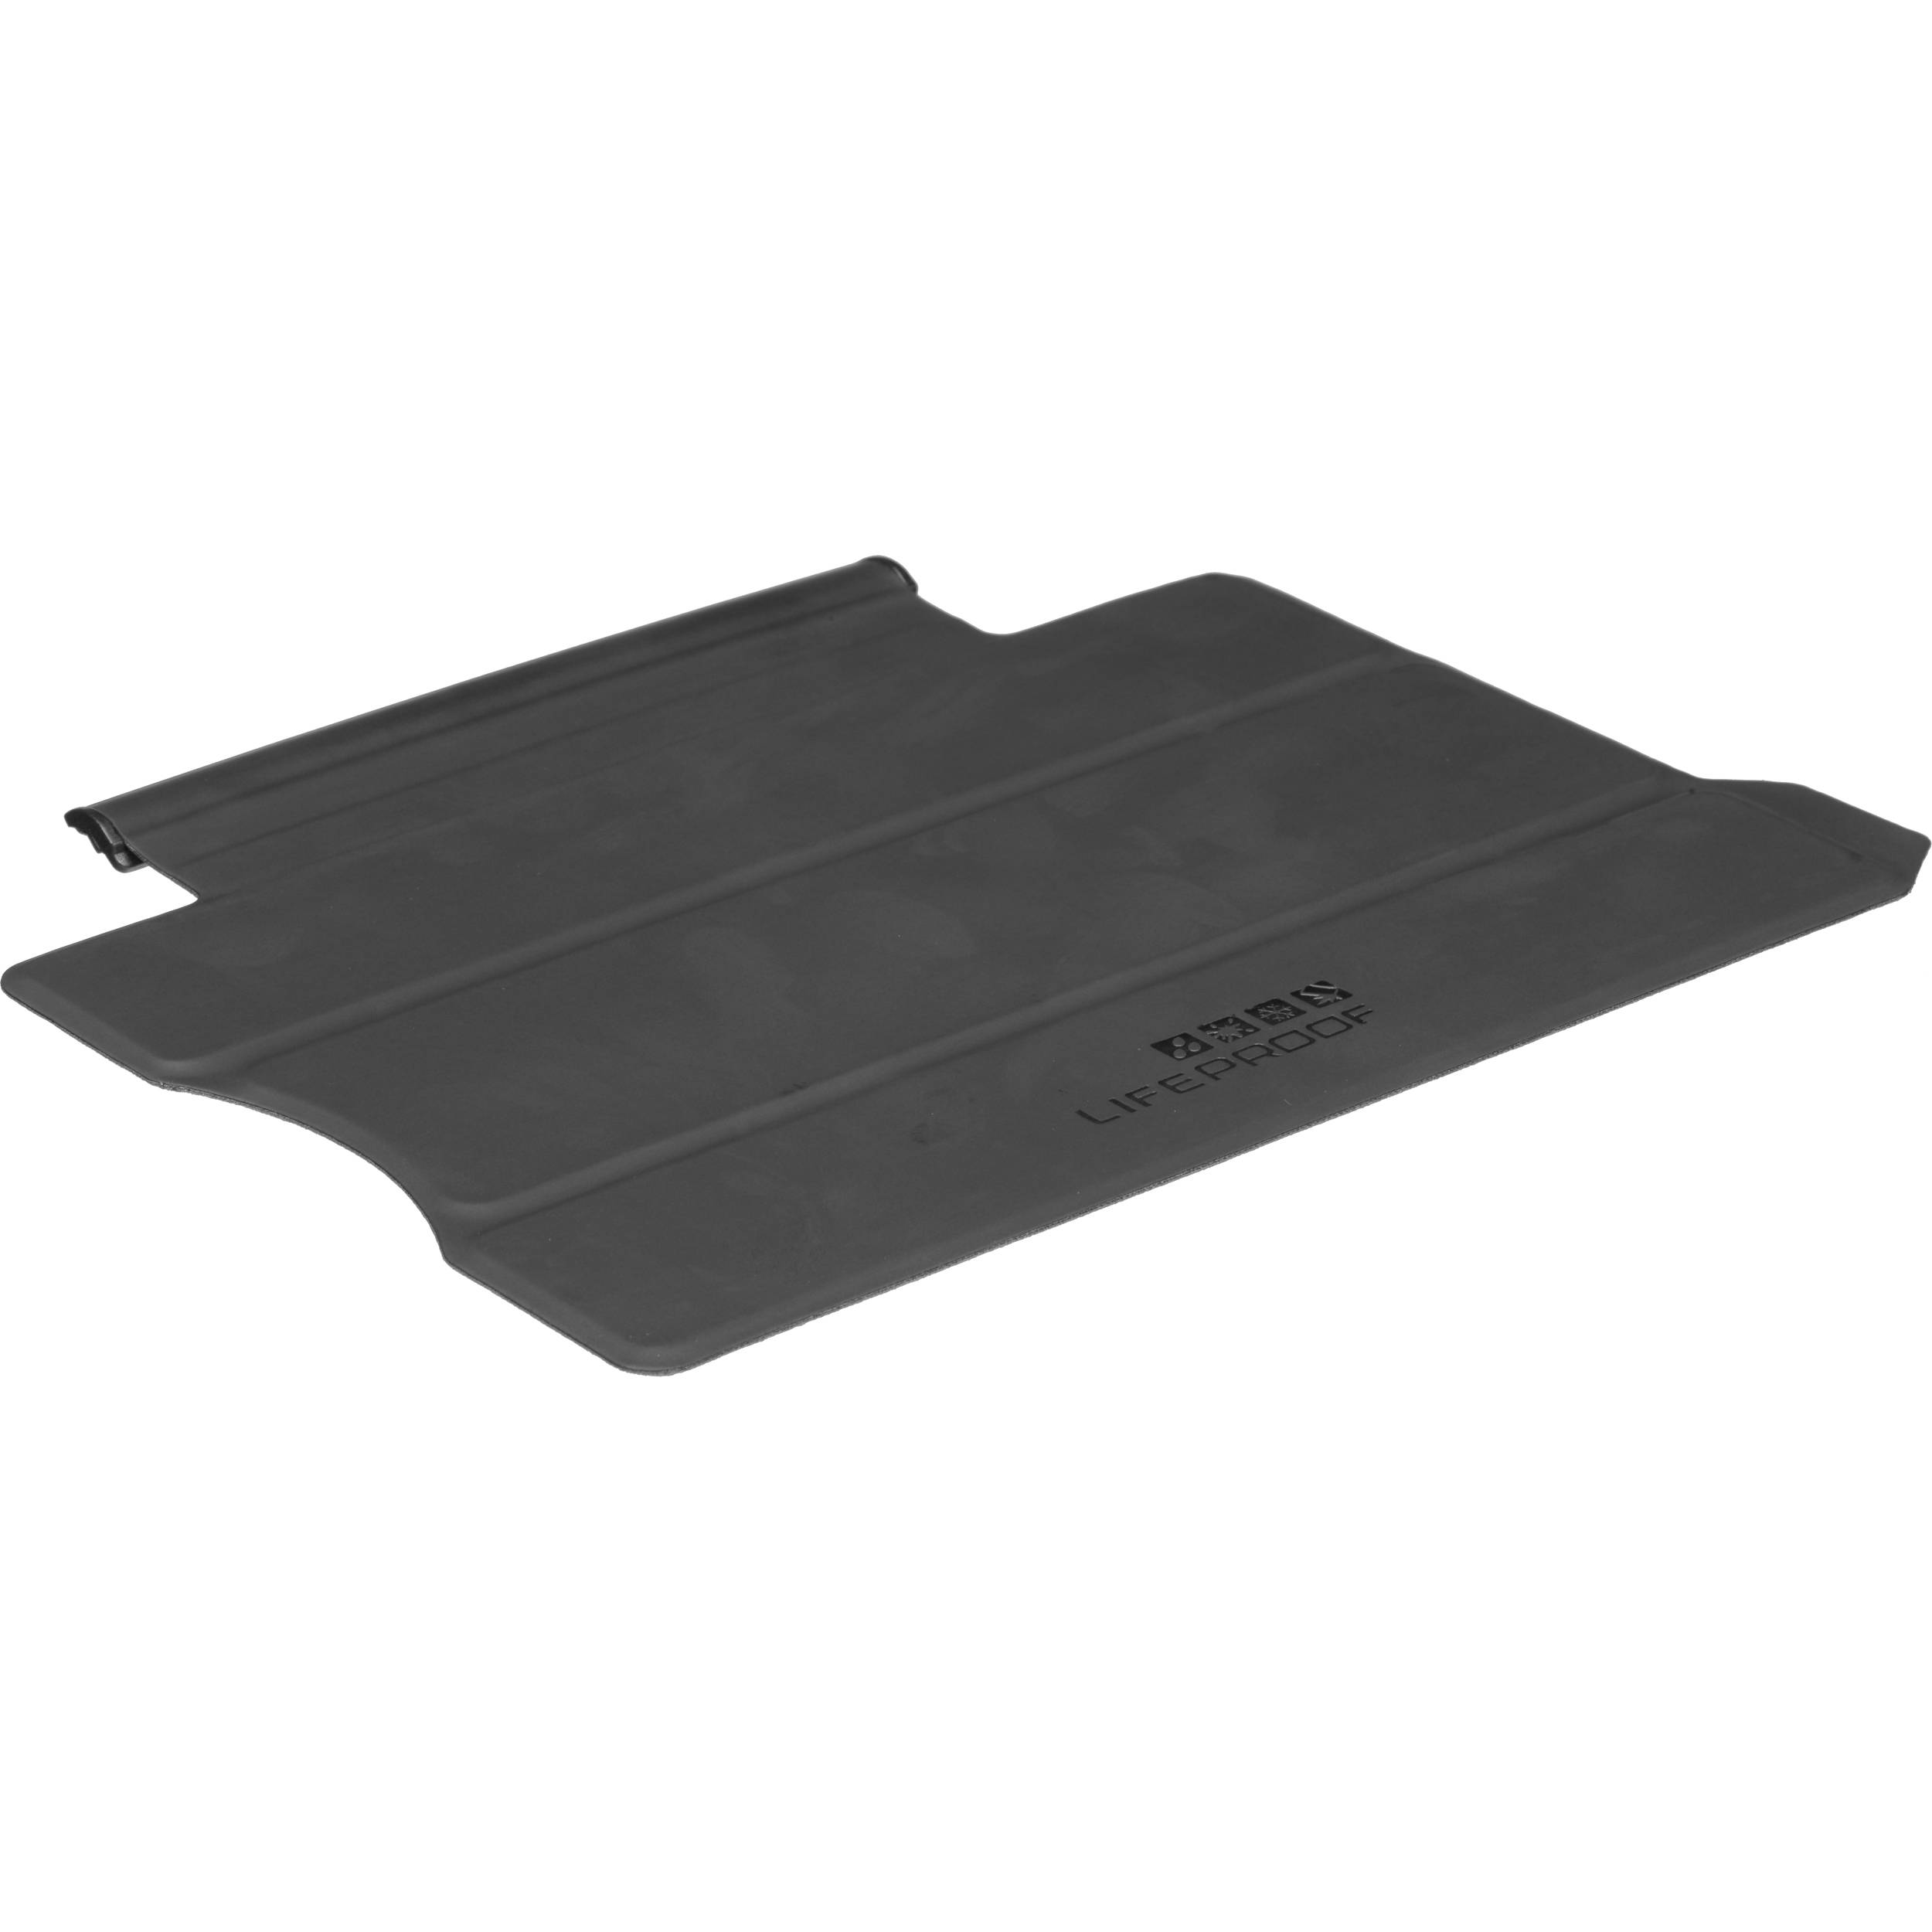 Lifeproof Portfolio Cover Stand For The Ipad 1433 02 Apple Nuud Air 2 Mini 1 3 N